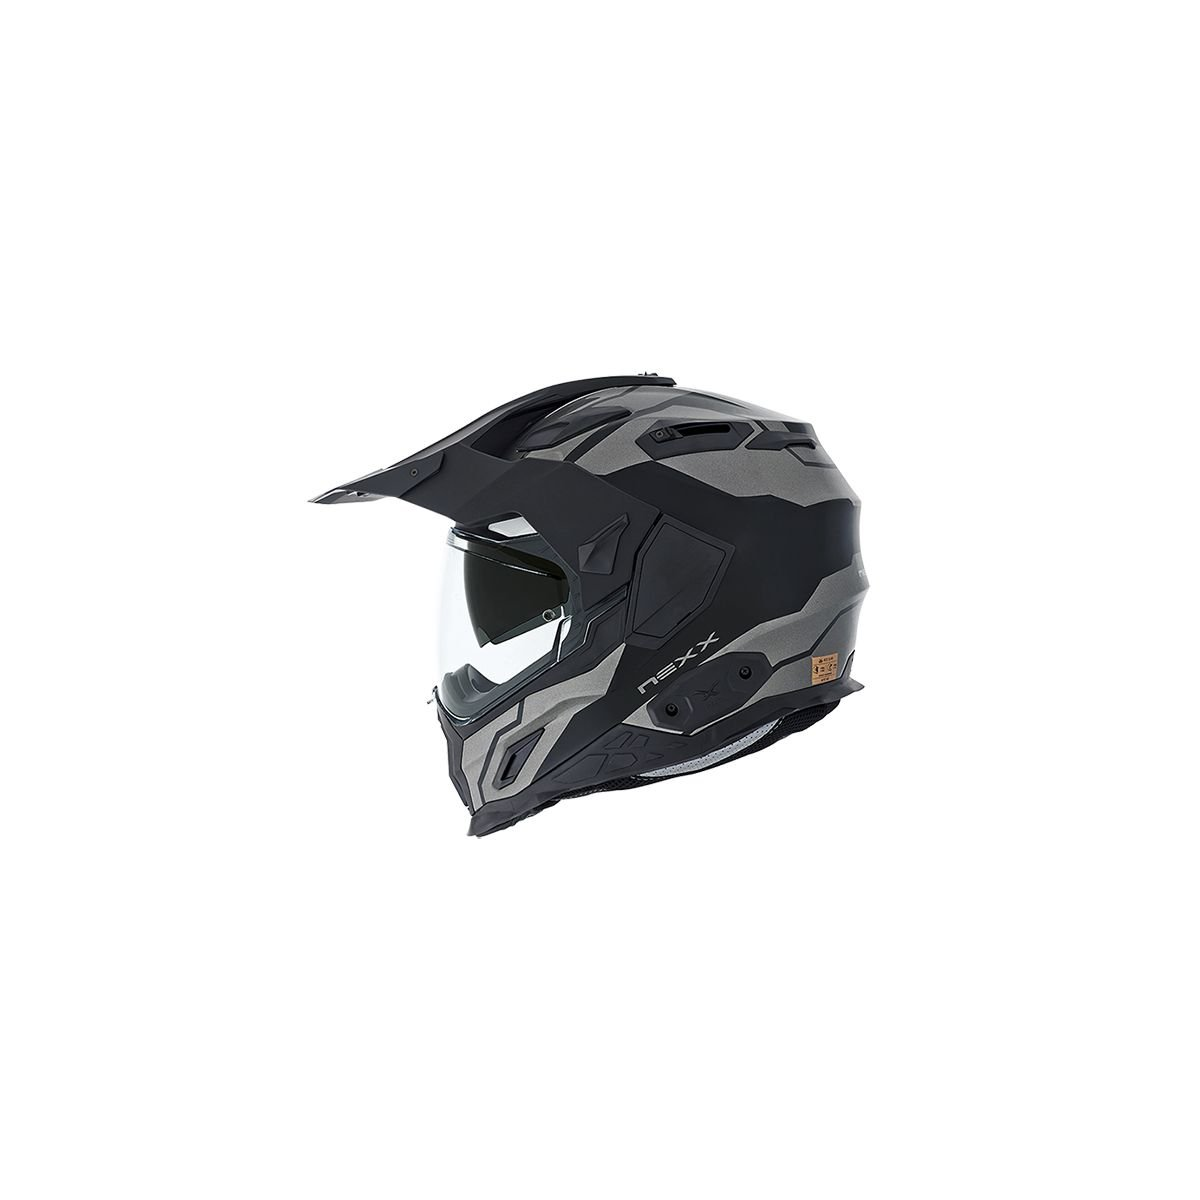 Amazon.com: NEXX X.D1 Baja Titanium Motorcycle Helmet (X Large): Automotive